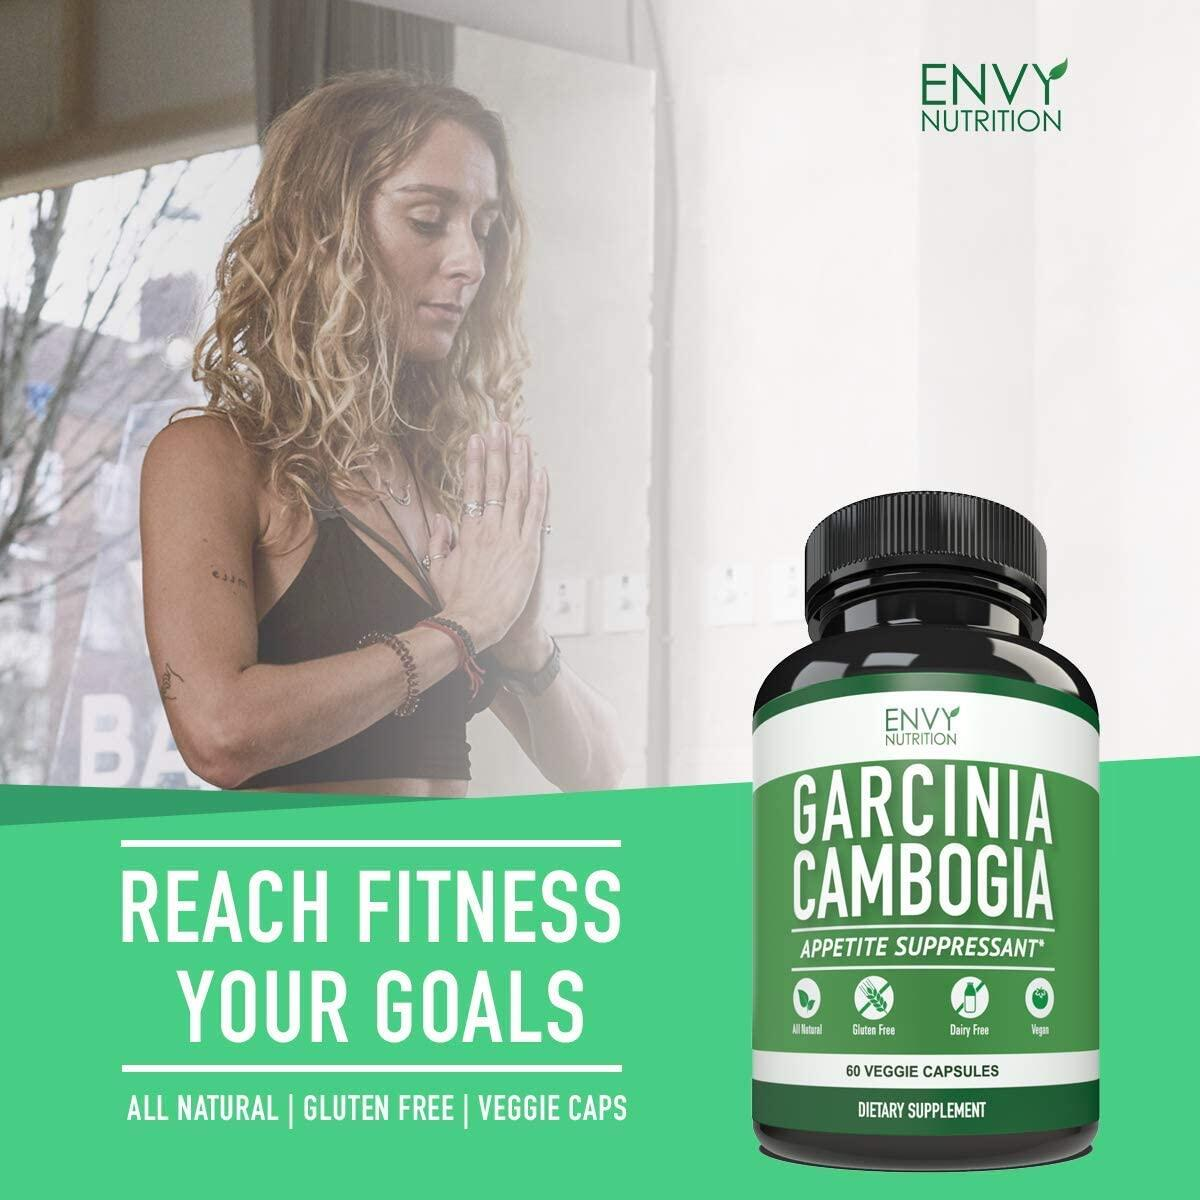 Garcinia Cambogia to Aid Healthy Weight - High Quality Garcinia Cambogia with 95 Percent HCA Extract- Supports Healthy Weight Loss - 60 Capsules